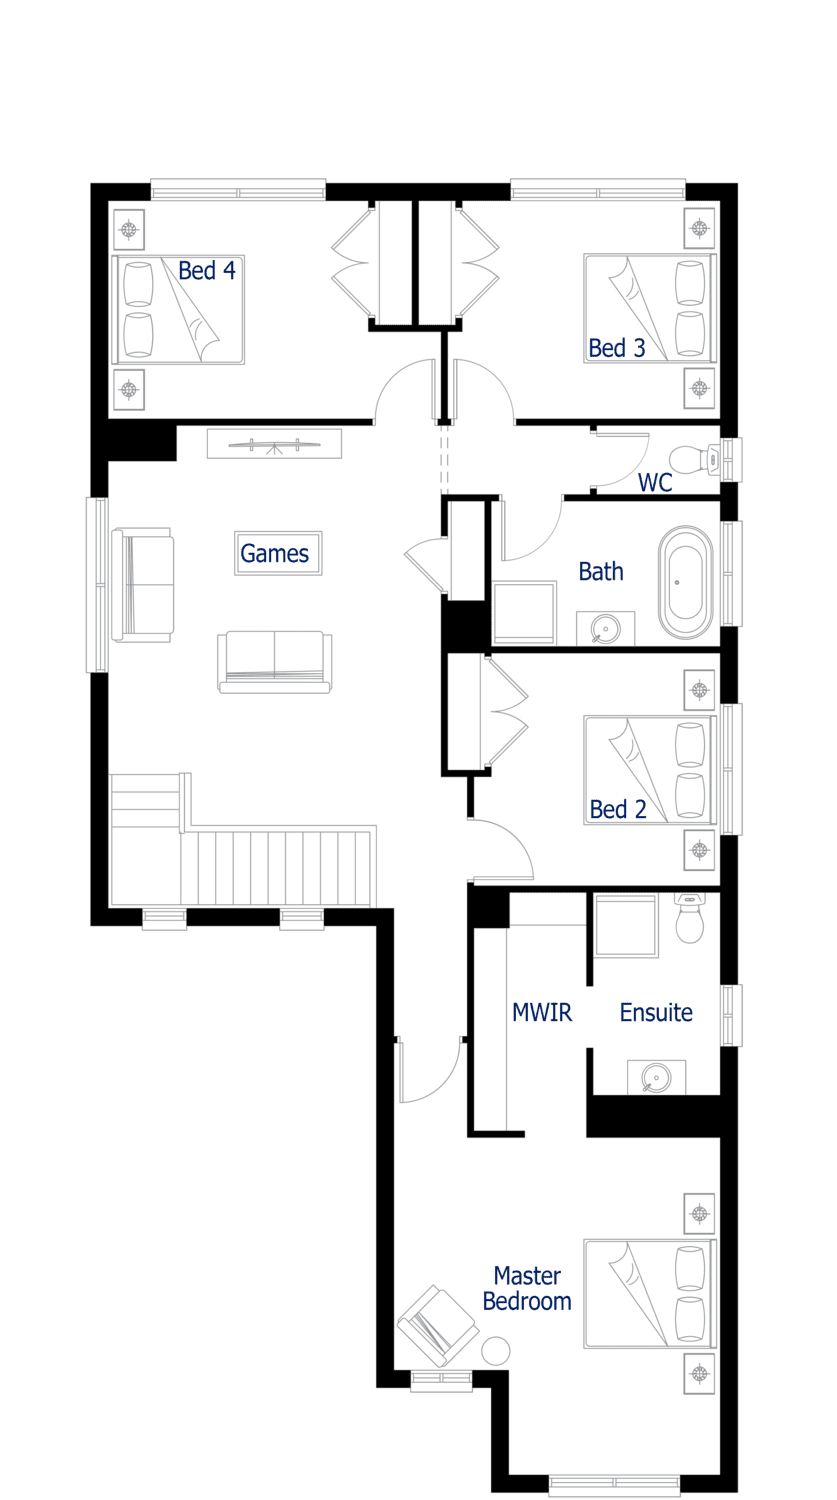 FloorPlan2_HOUSE720_Sutton_31-02-1